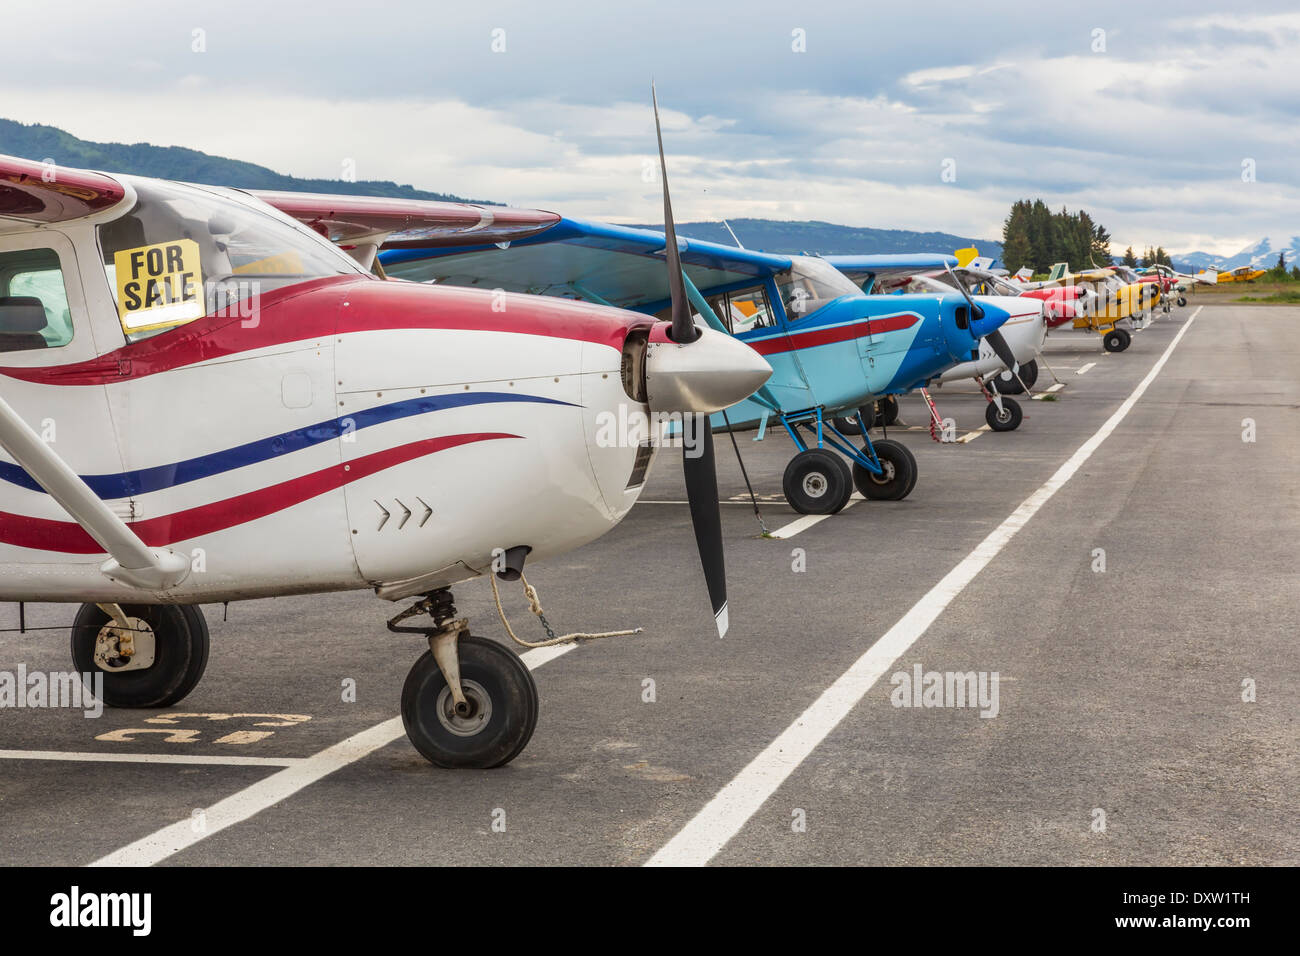 Small airplanes lined up on the tarmack in the coastal town of Homer, Alaska. - Stock Image